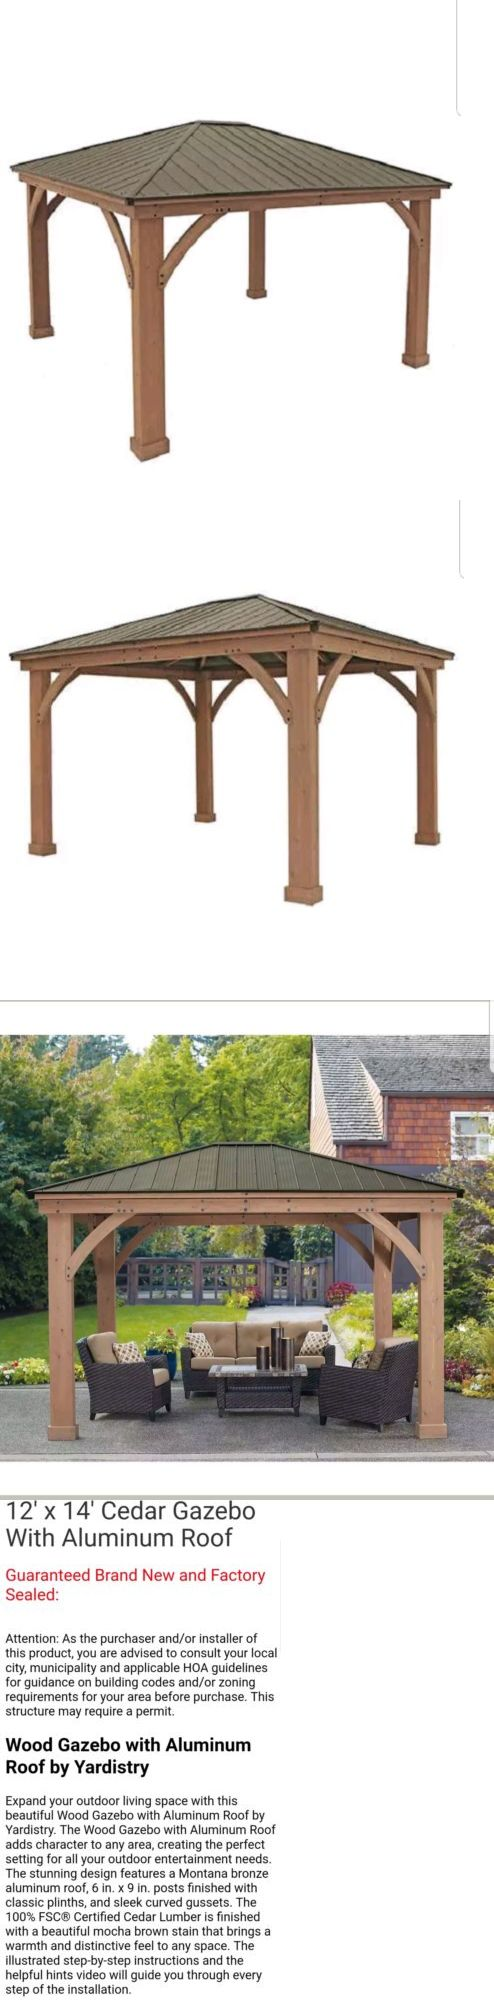 Gazebos 180995 Yardistry 12 X 14 Cedar Gazebo No Tax With Aluminum Roof Buy It Now Only 1650 On Ebay Aluminum Roof Gazebo Gazebo Sale